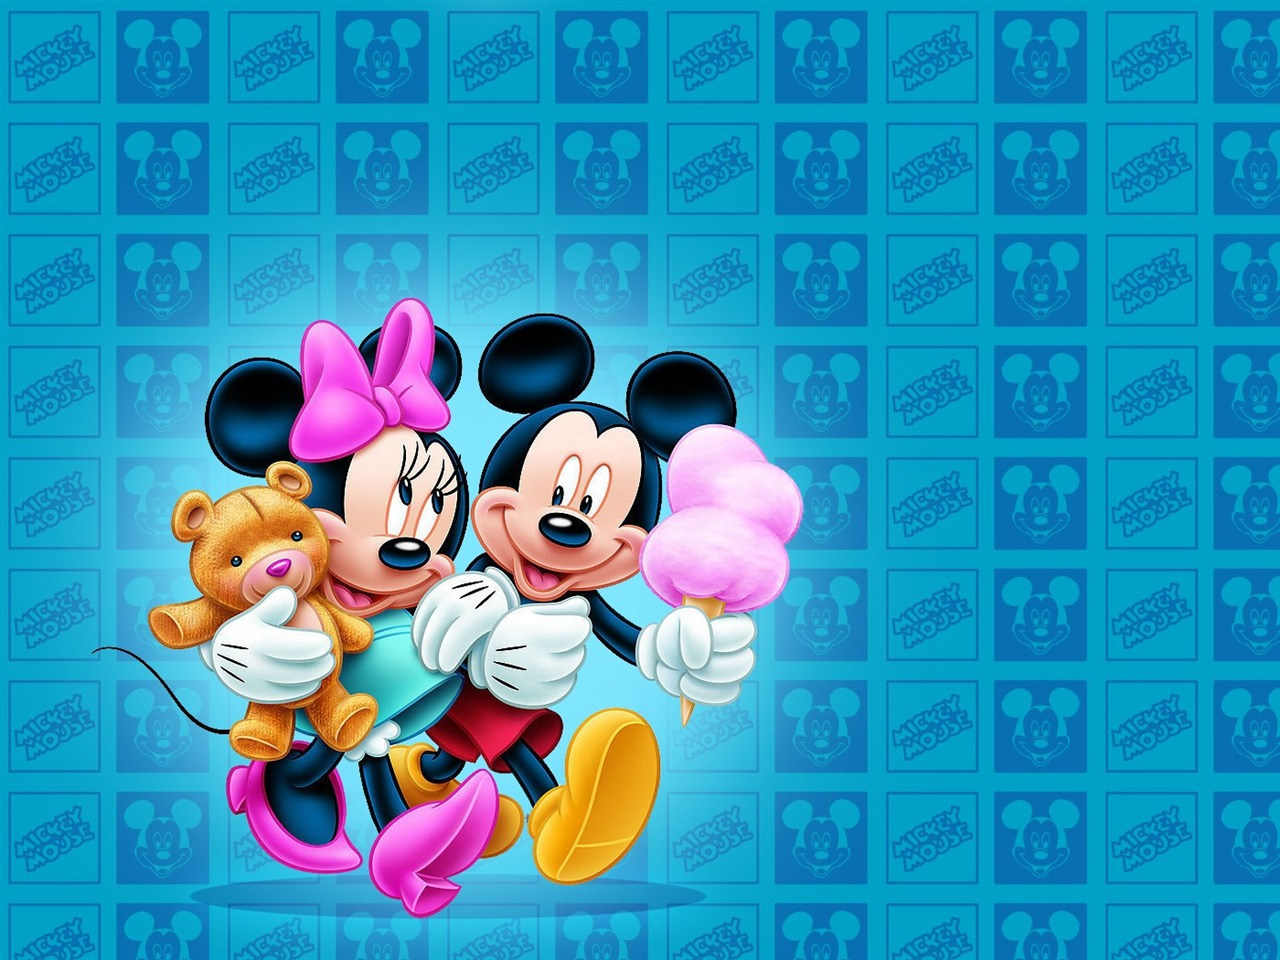 Mickey Mouse Wallpaper Download - Cute Mickey Wallpaper Of Mickey Mouse And Minnie Mouse , HD Wallpaper & Backgrounds